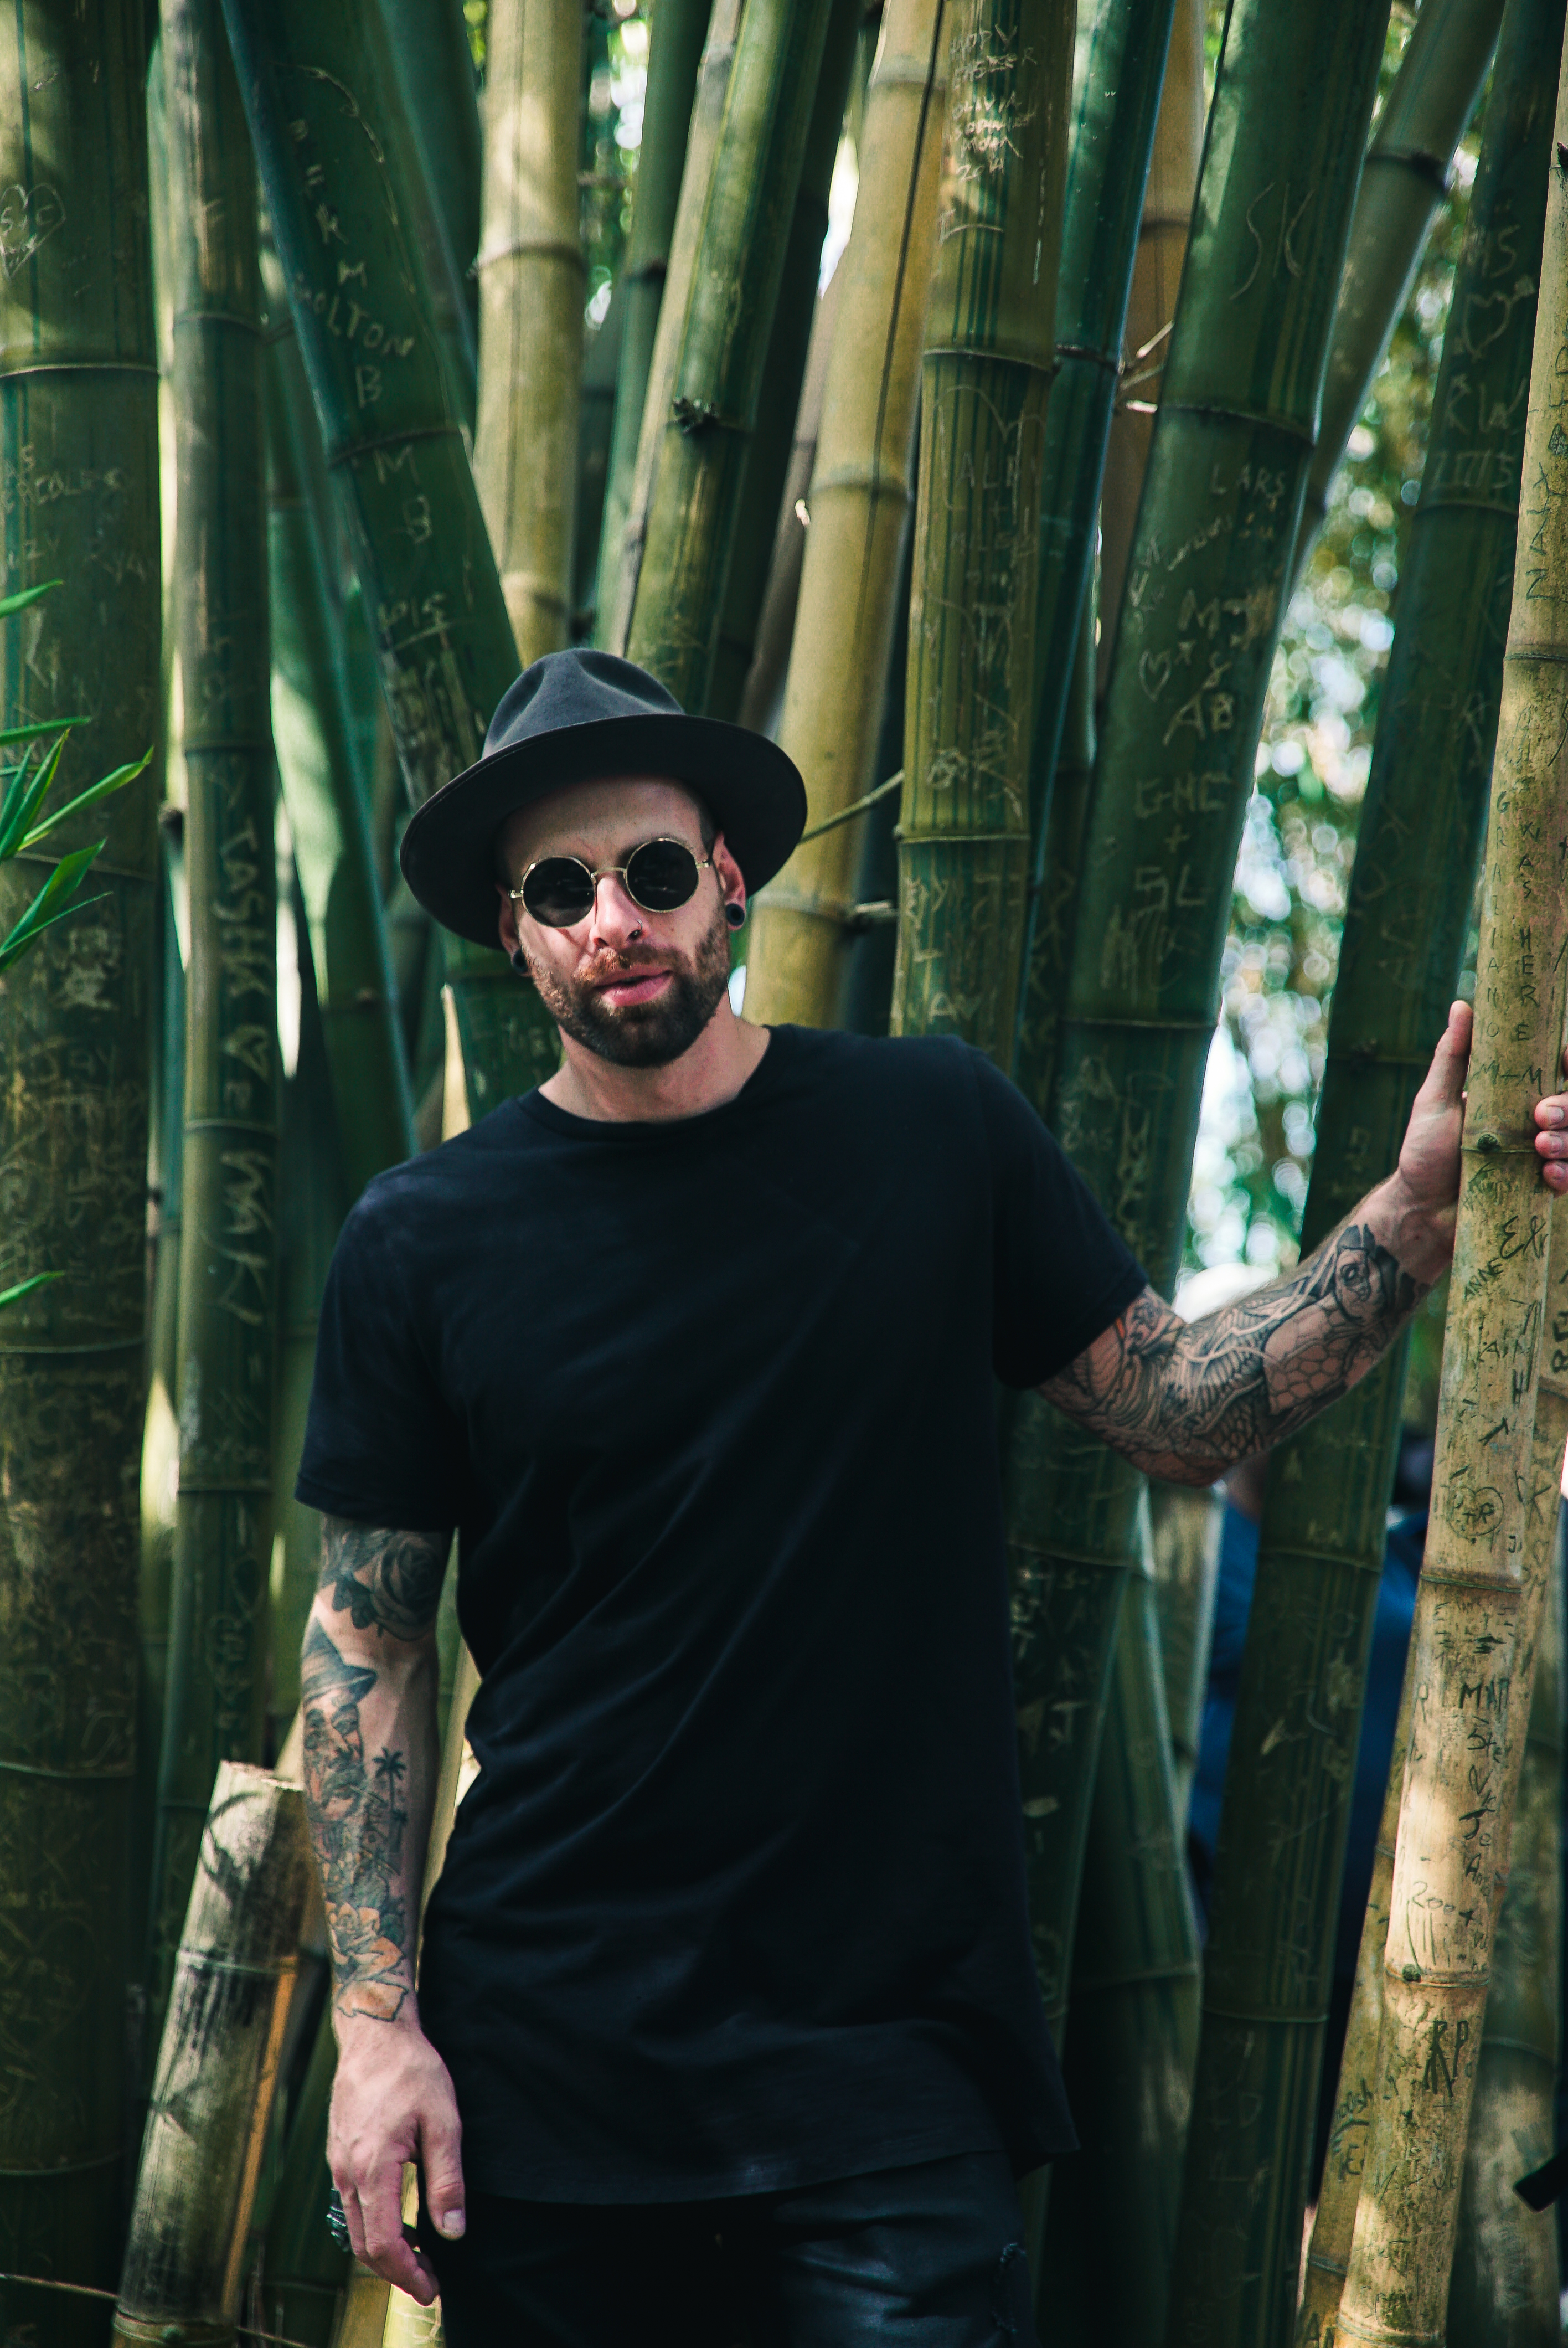 man holding bamboo plant wearing sunglasses and fedora hat